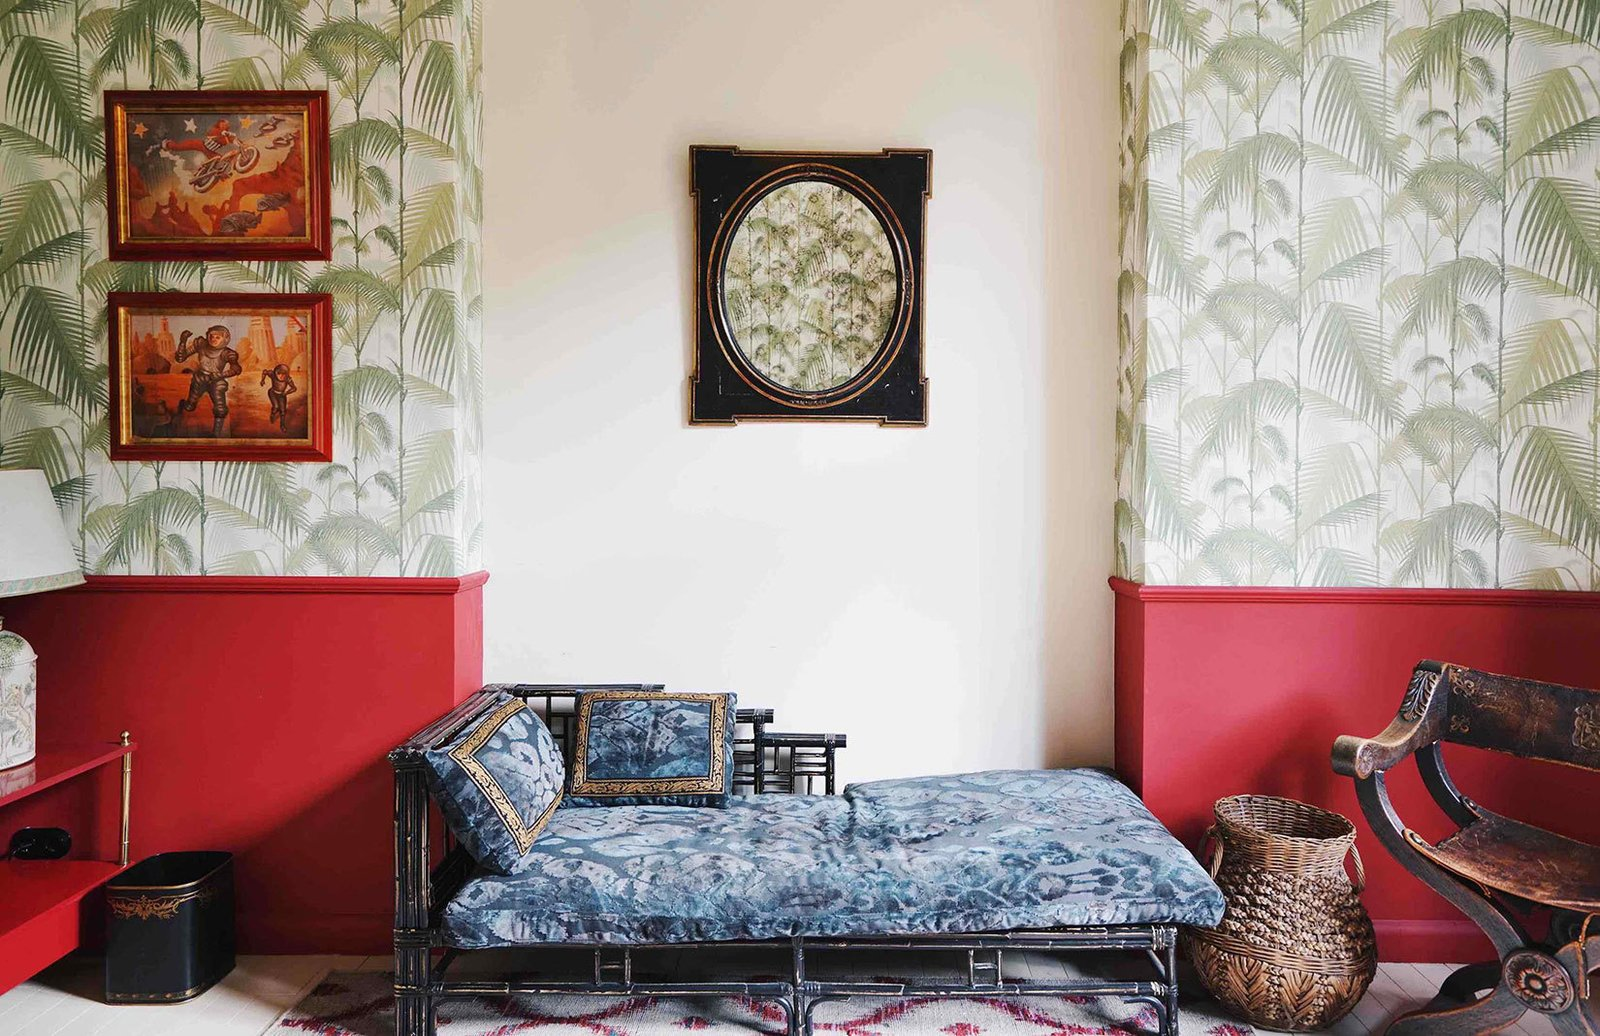 Living Room, Sofa, and Table Lighting  Photo 6 of 6 in Design Digest: Remembering Will Alsop, Elon Musk Makes Bricks, and More